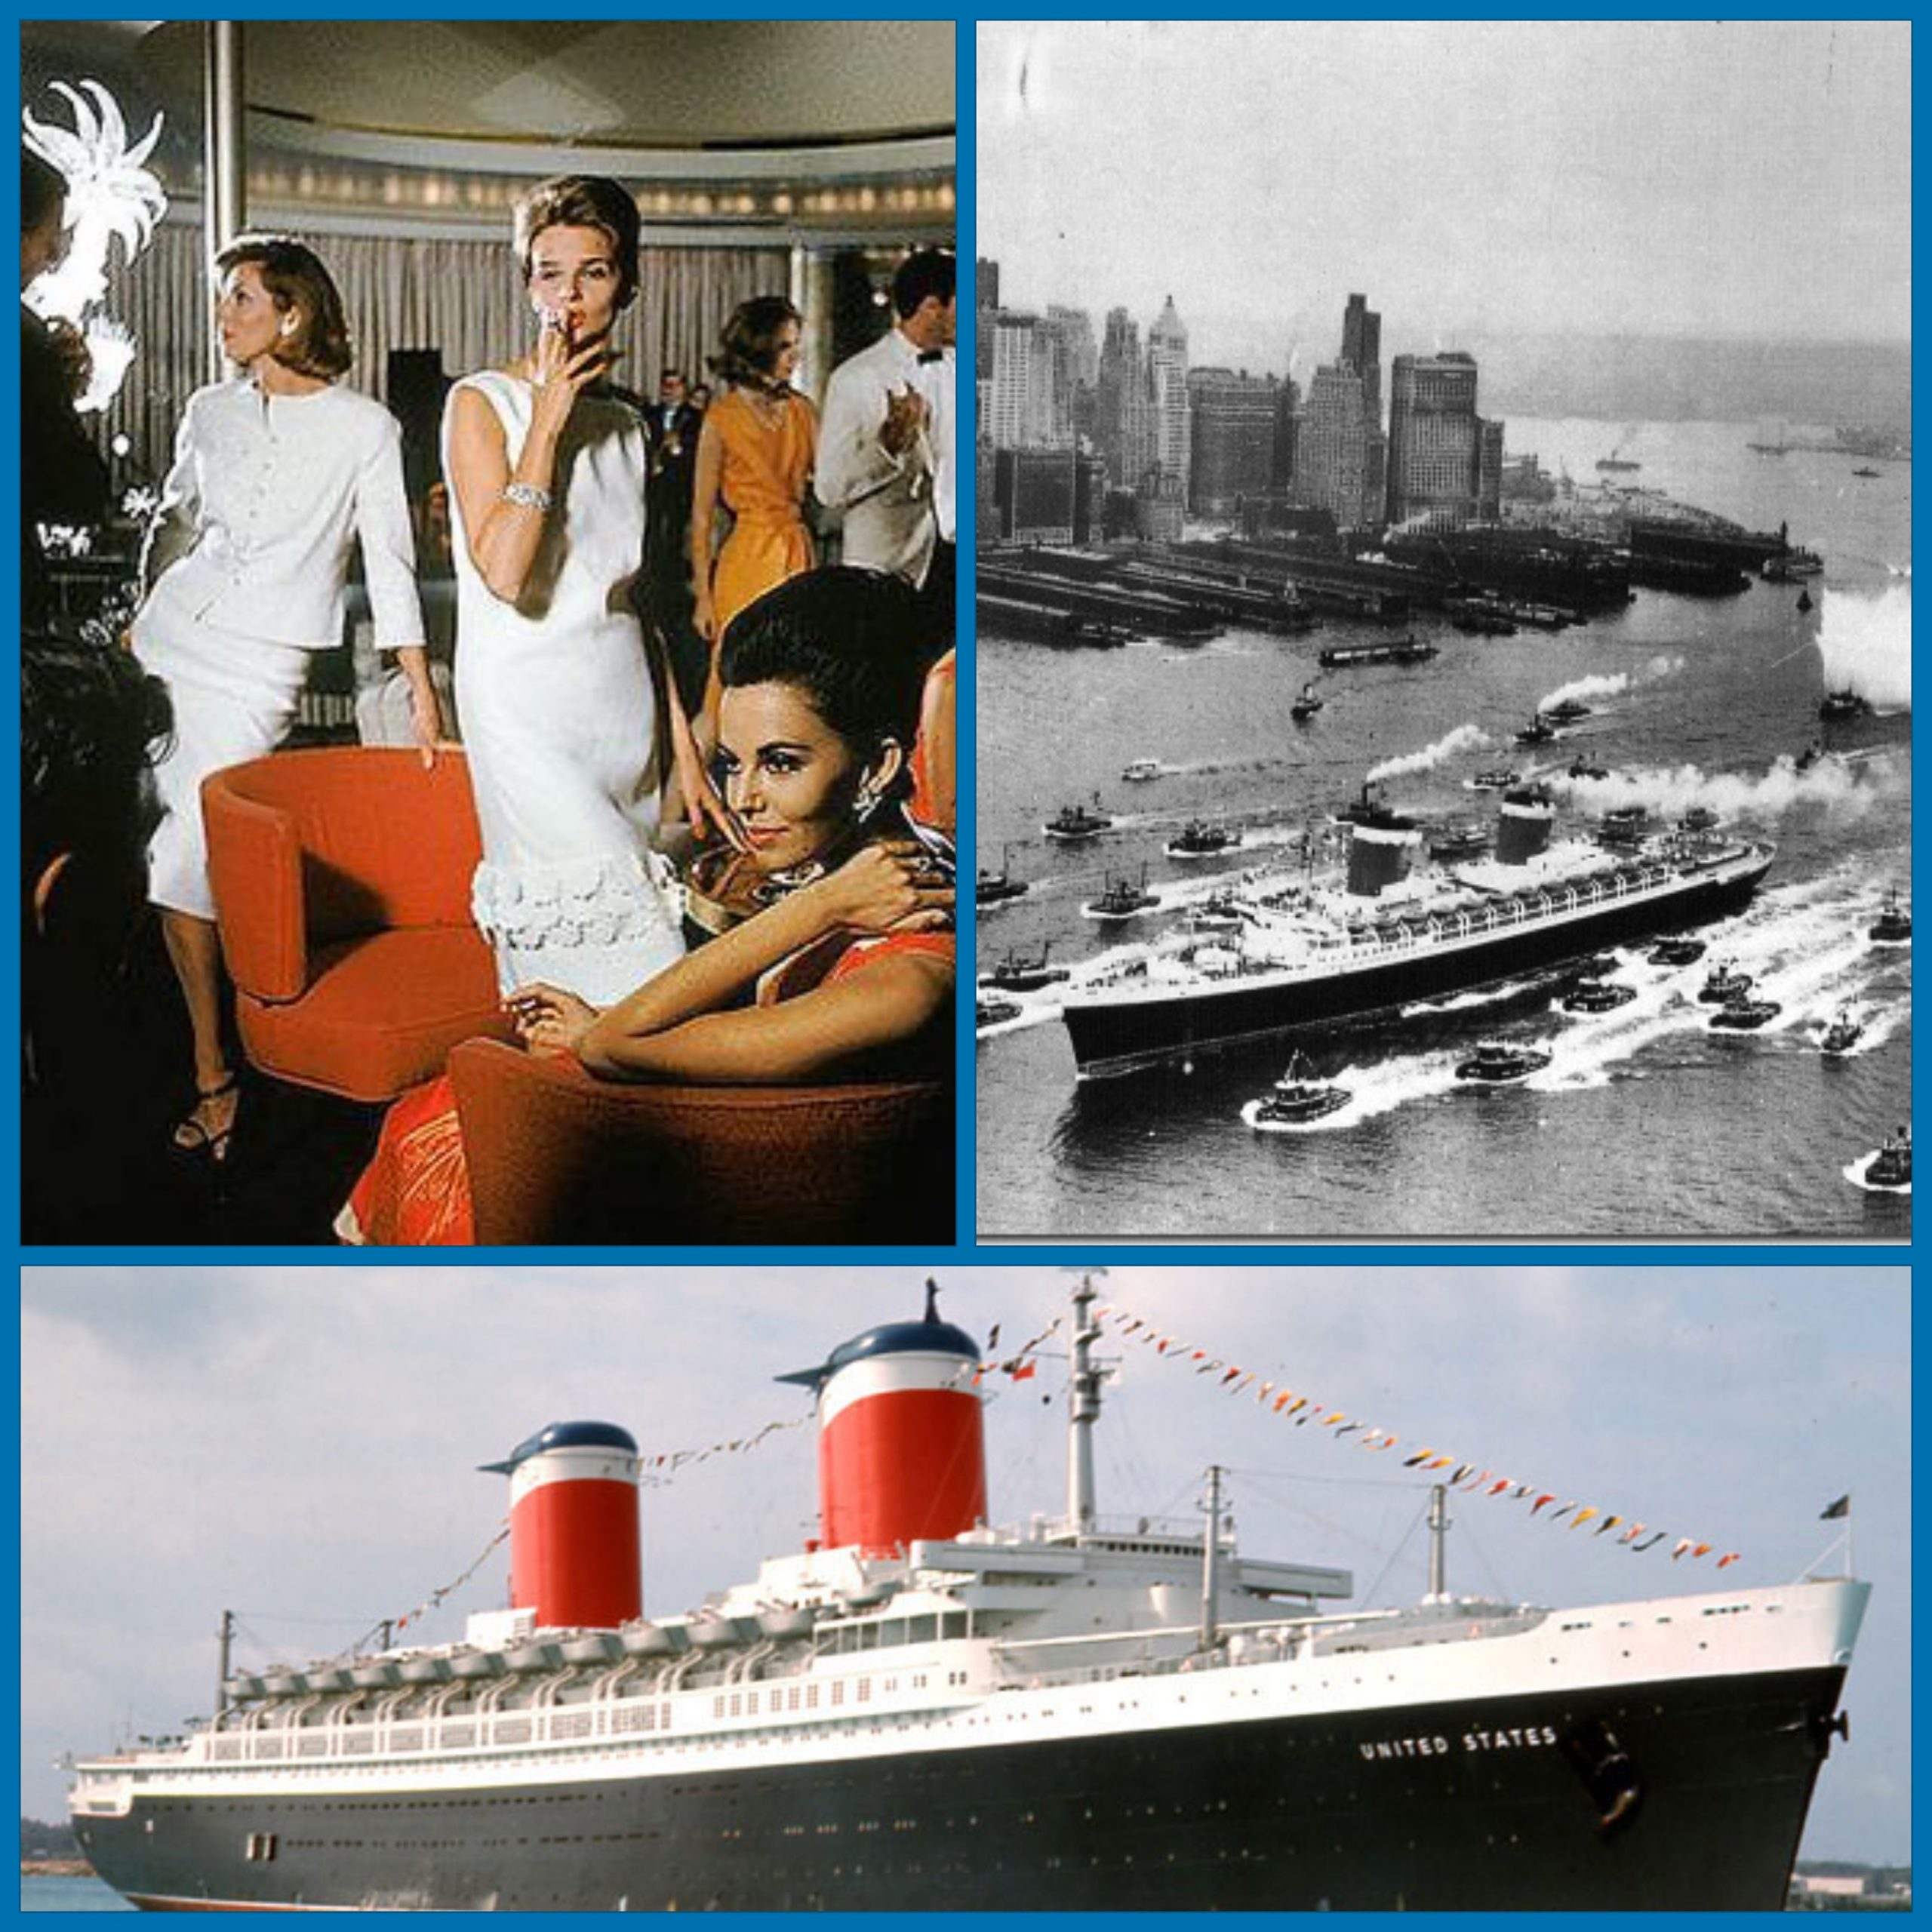 SS UNITED STATES, 1950S